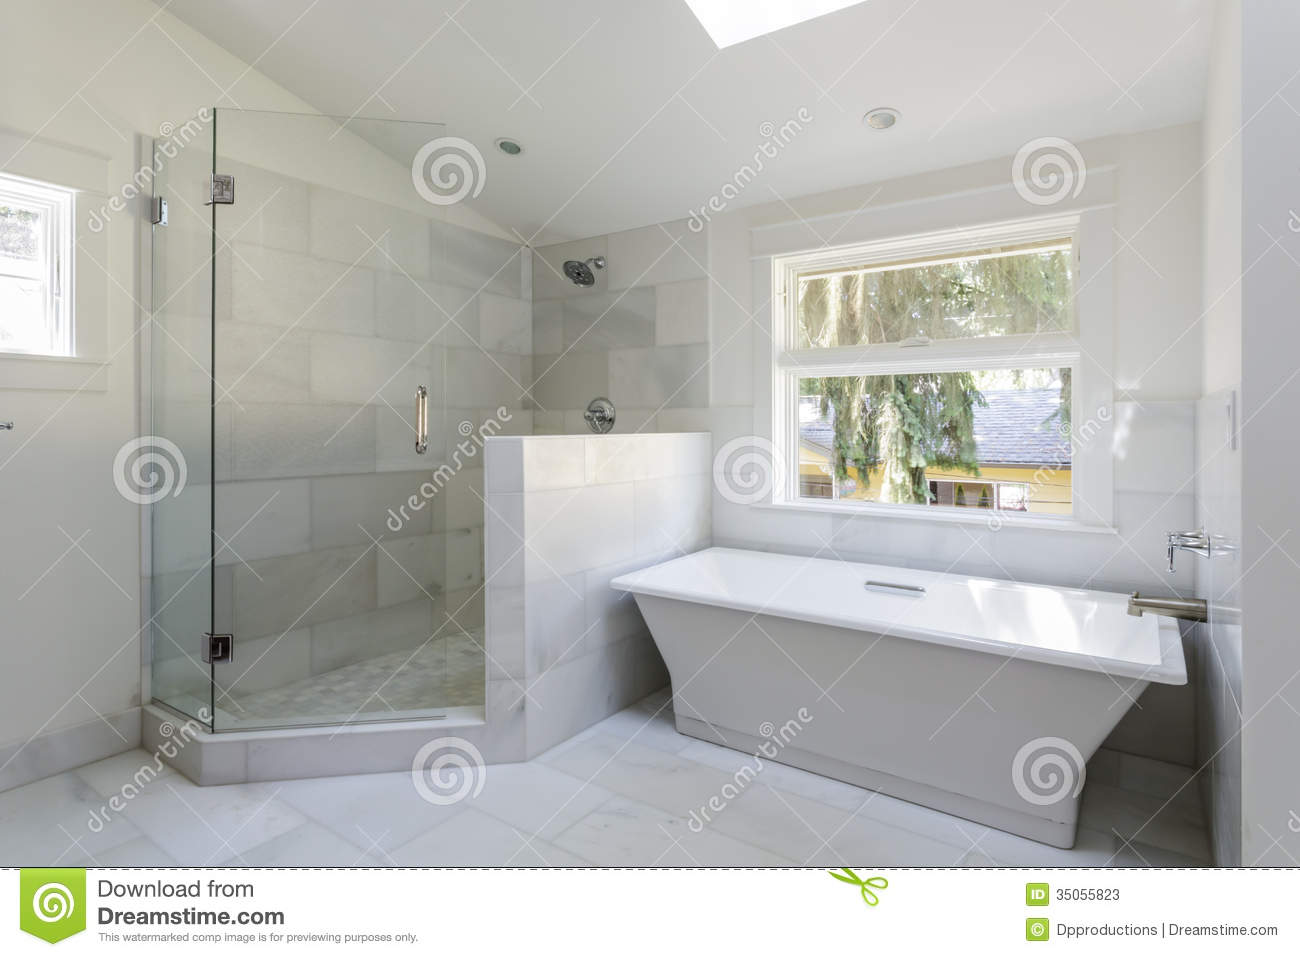 Modern bathroom with shower and bathtub stock image for Baignoire avec cabine de douche